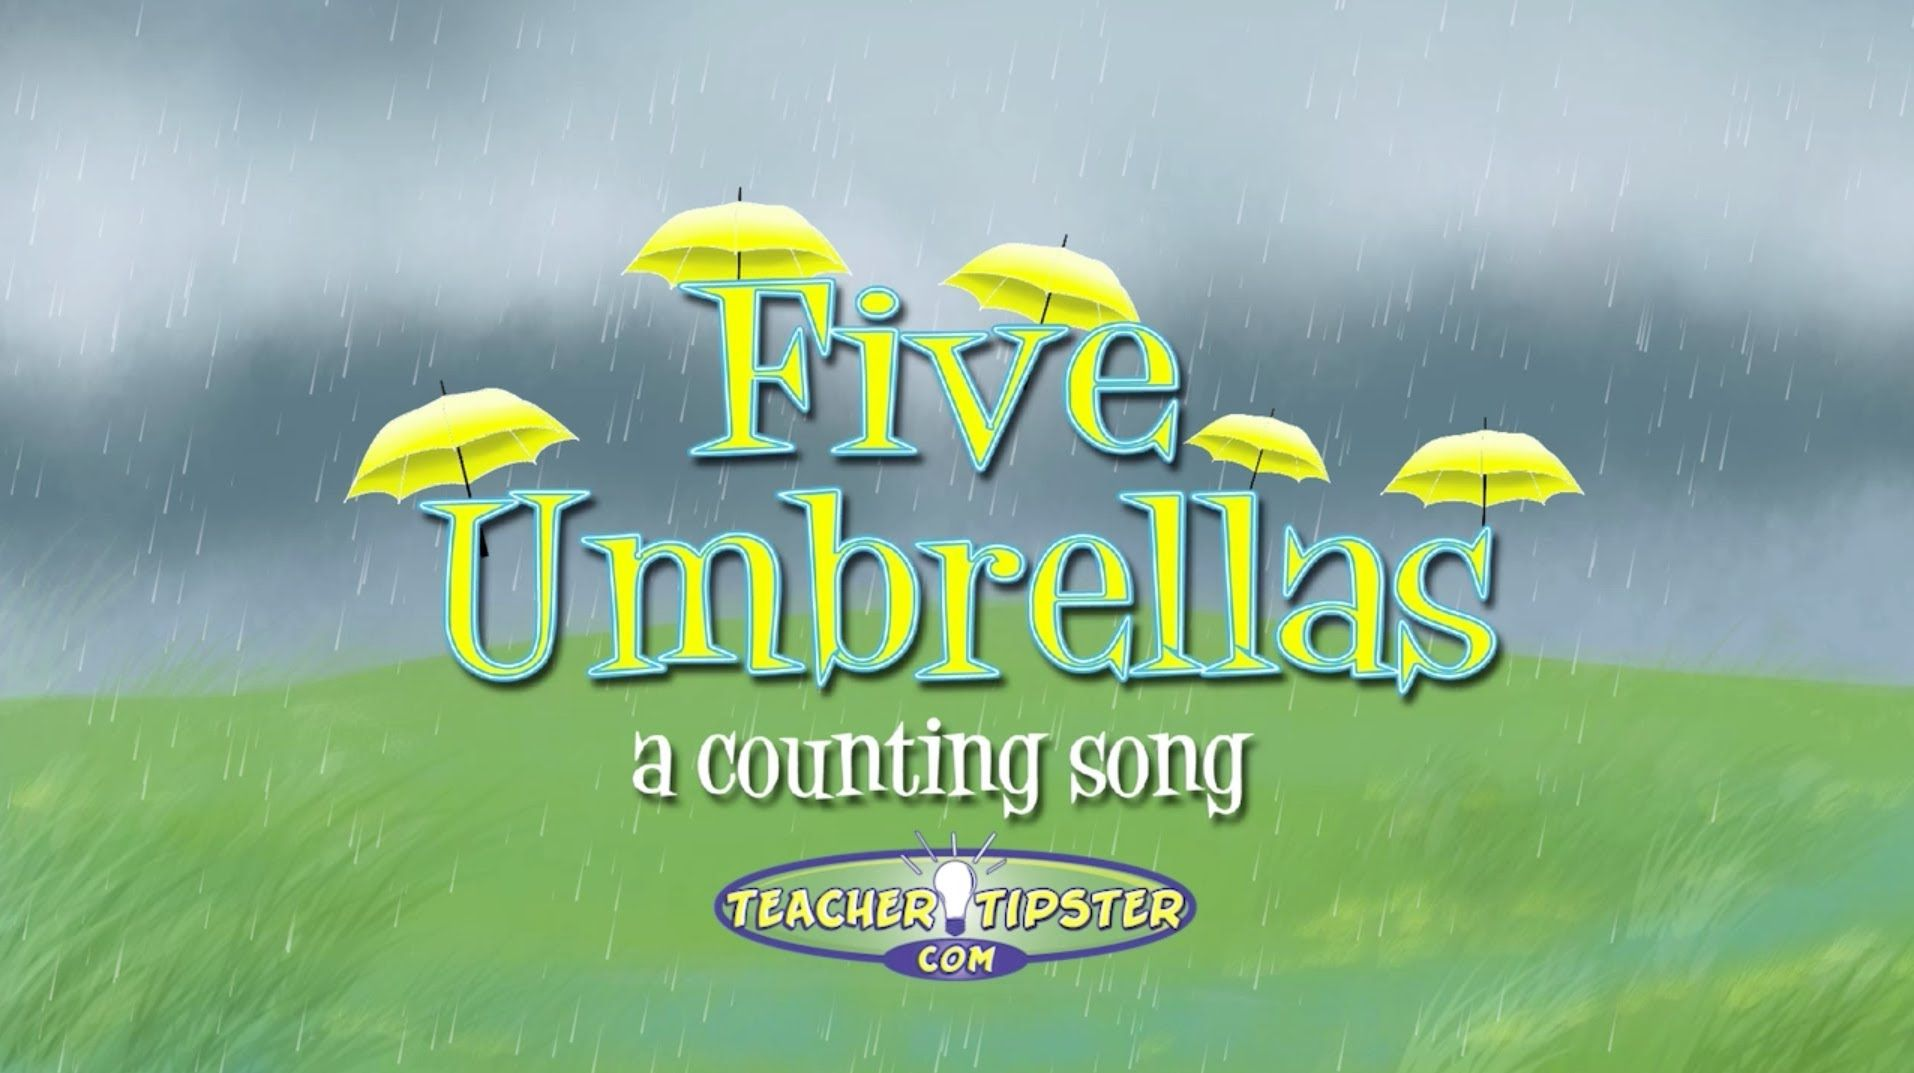 Rainy Day Math Counting Song Teacher Tipster